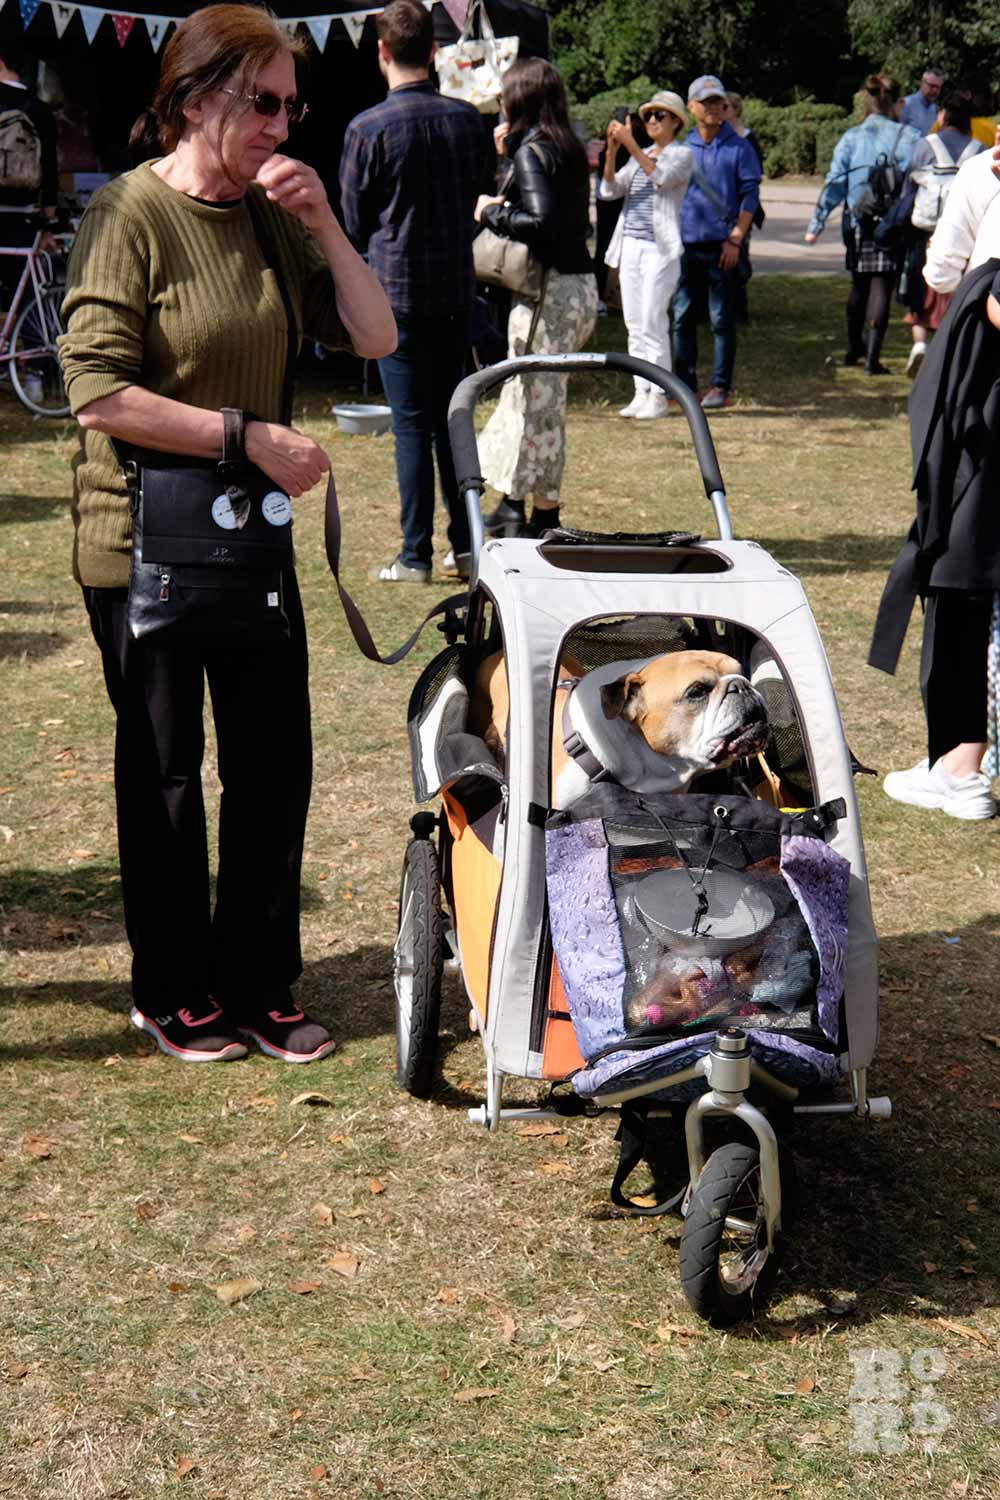 Dog in a pram at the Victoria Park Dog Show